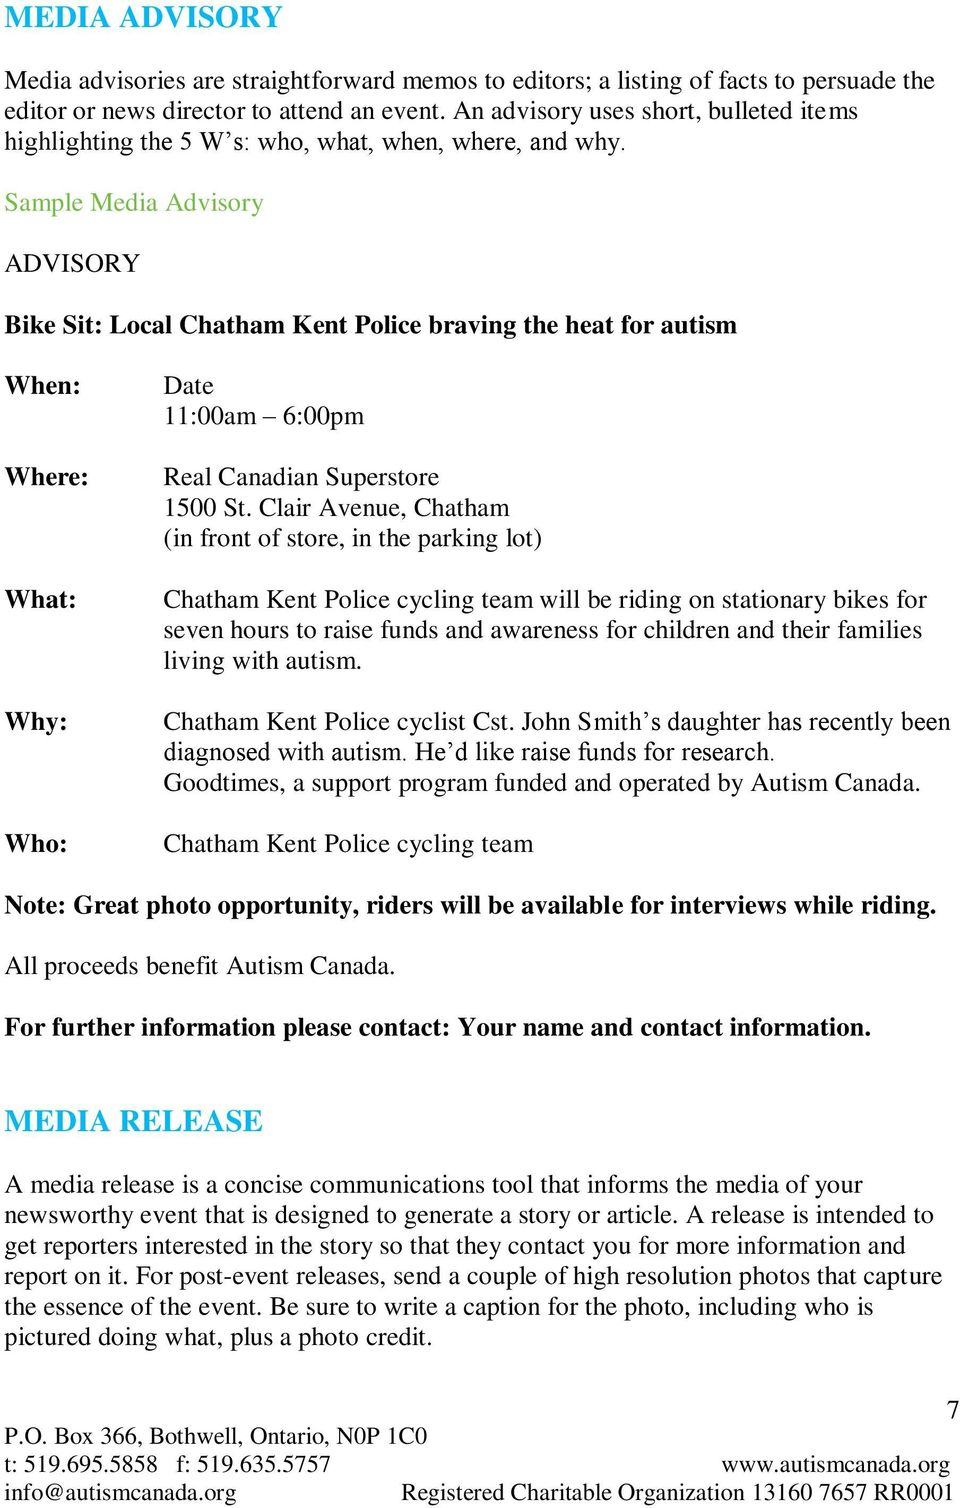 Sample Media Advisory ADVISORY Bike Sit: Local Chatham Kent Police braving the heat for autism When: Where: What: Why: Who: Date 11:00am 6:00pm Real Canadian Superstore 1500 St.